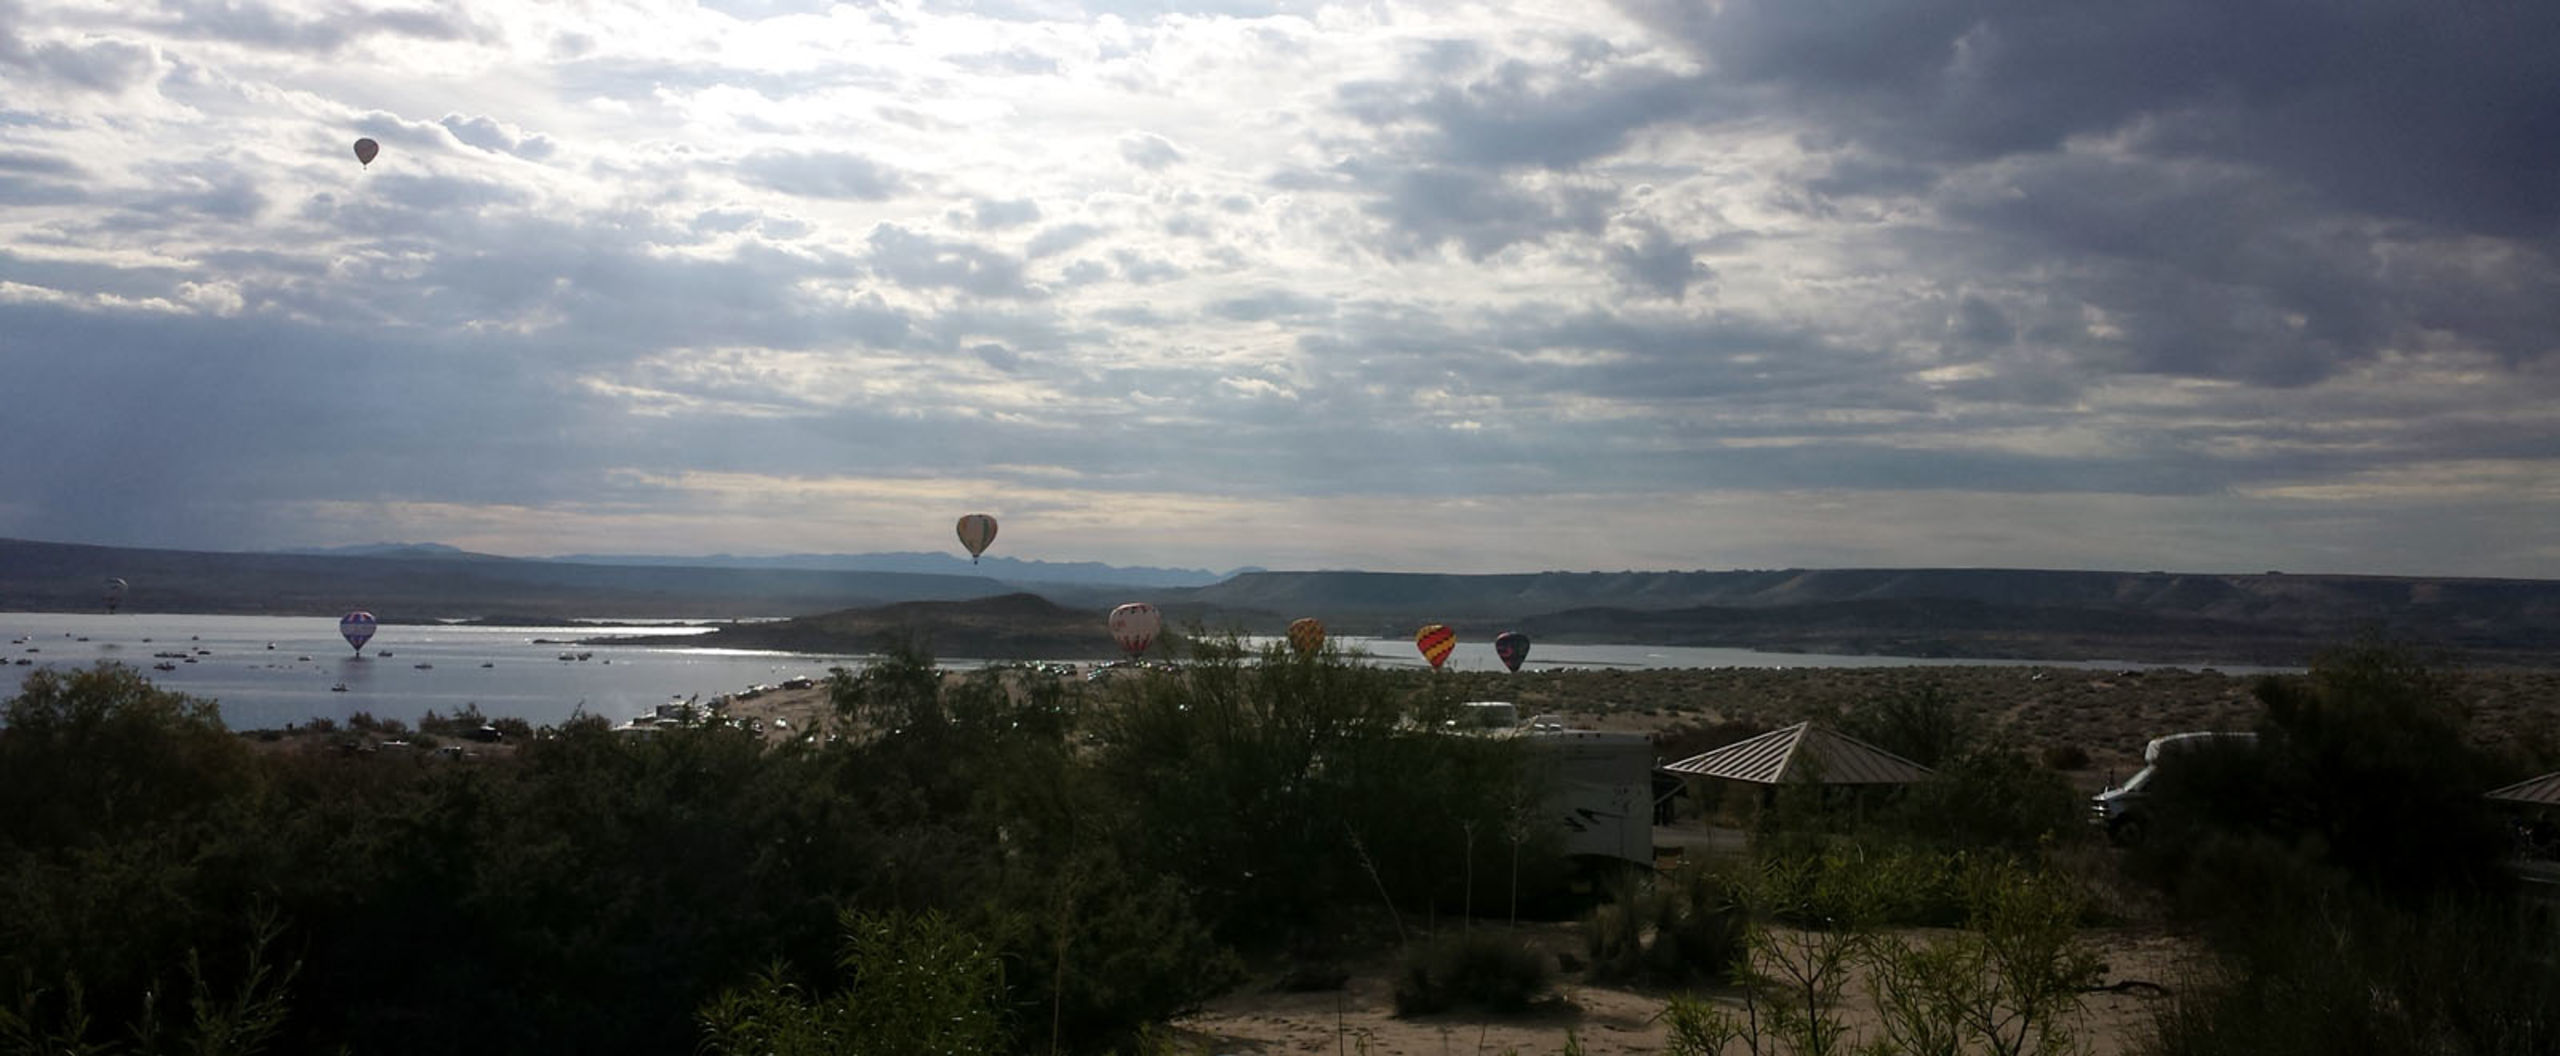 Boundless natural beauty, camping, fishing, boating, ballooning, and water sports right in our back yard